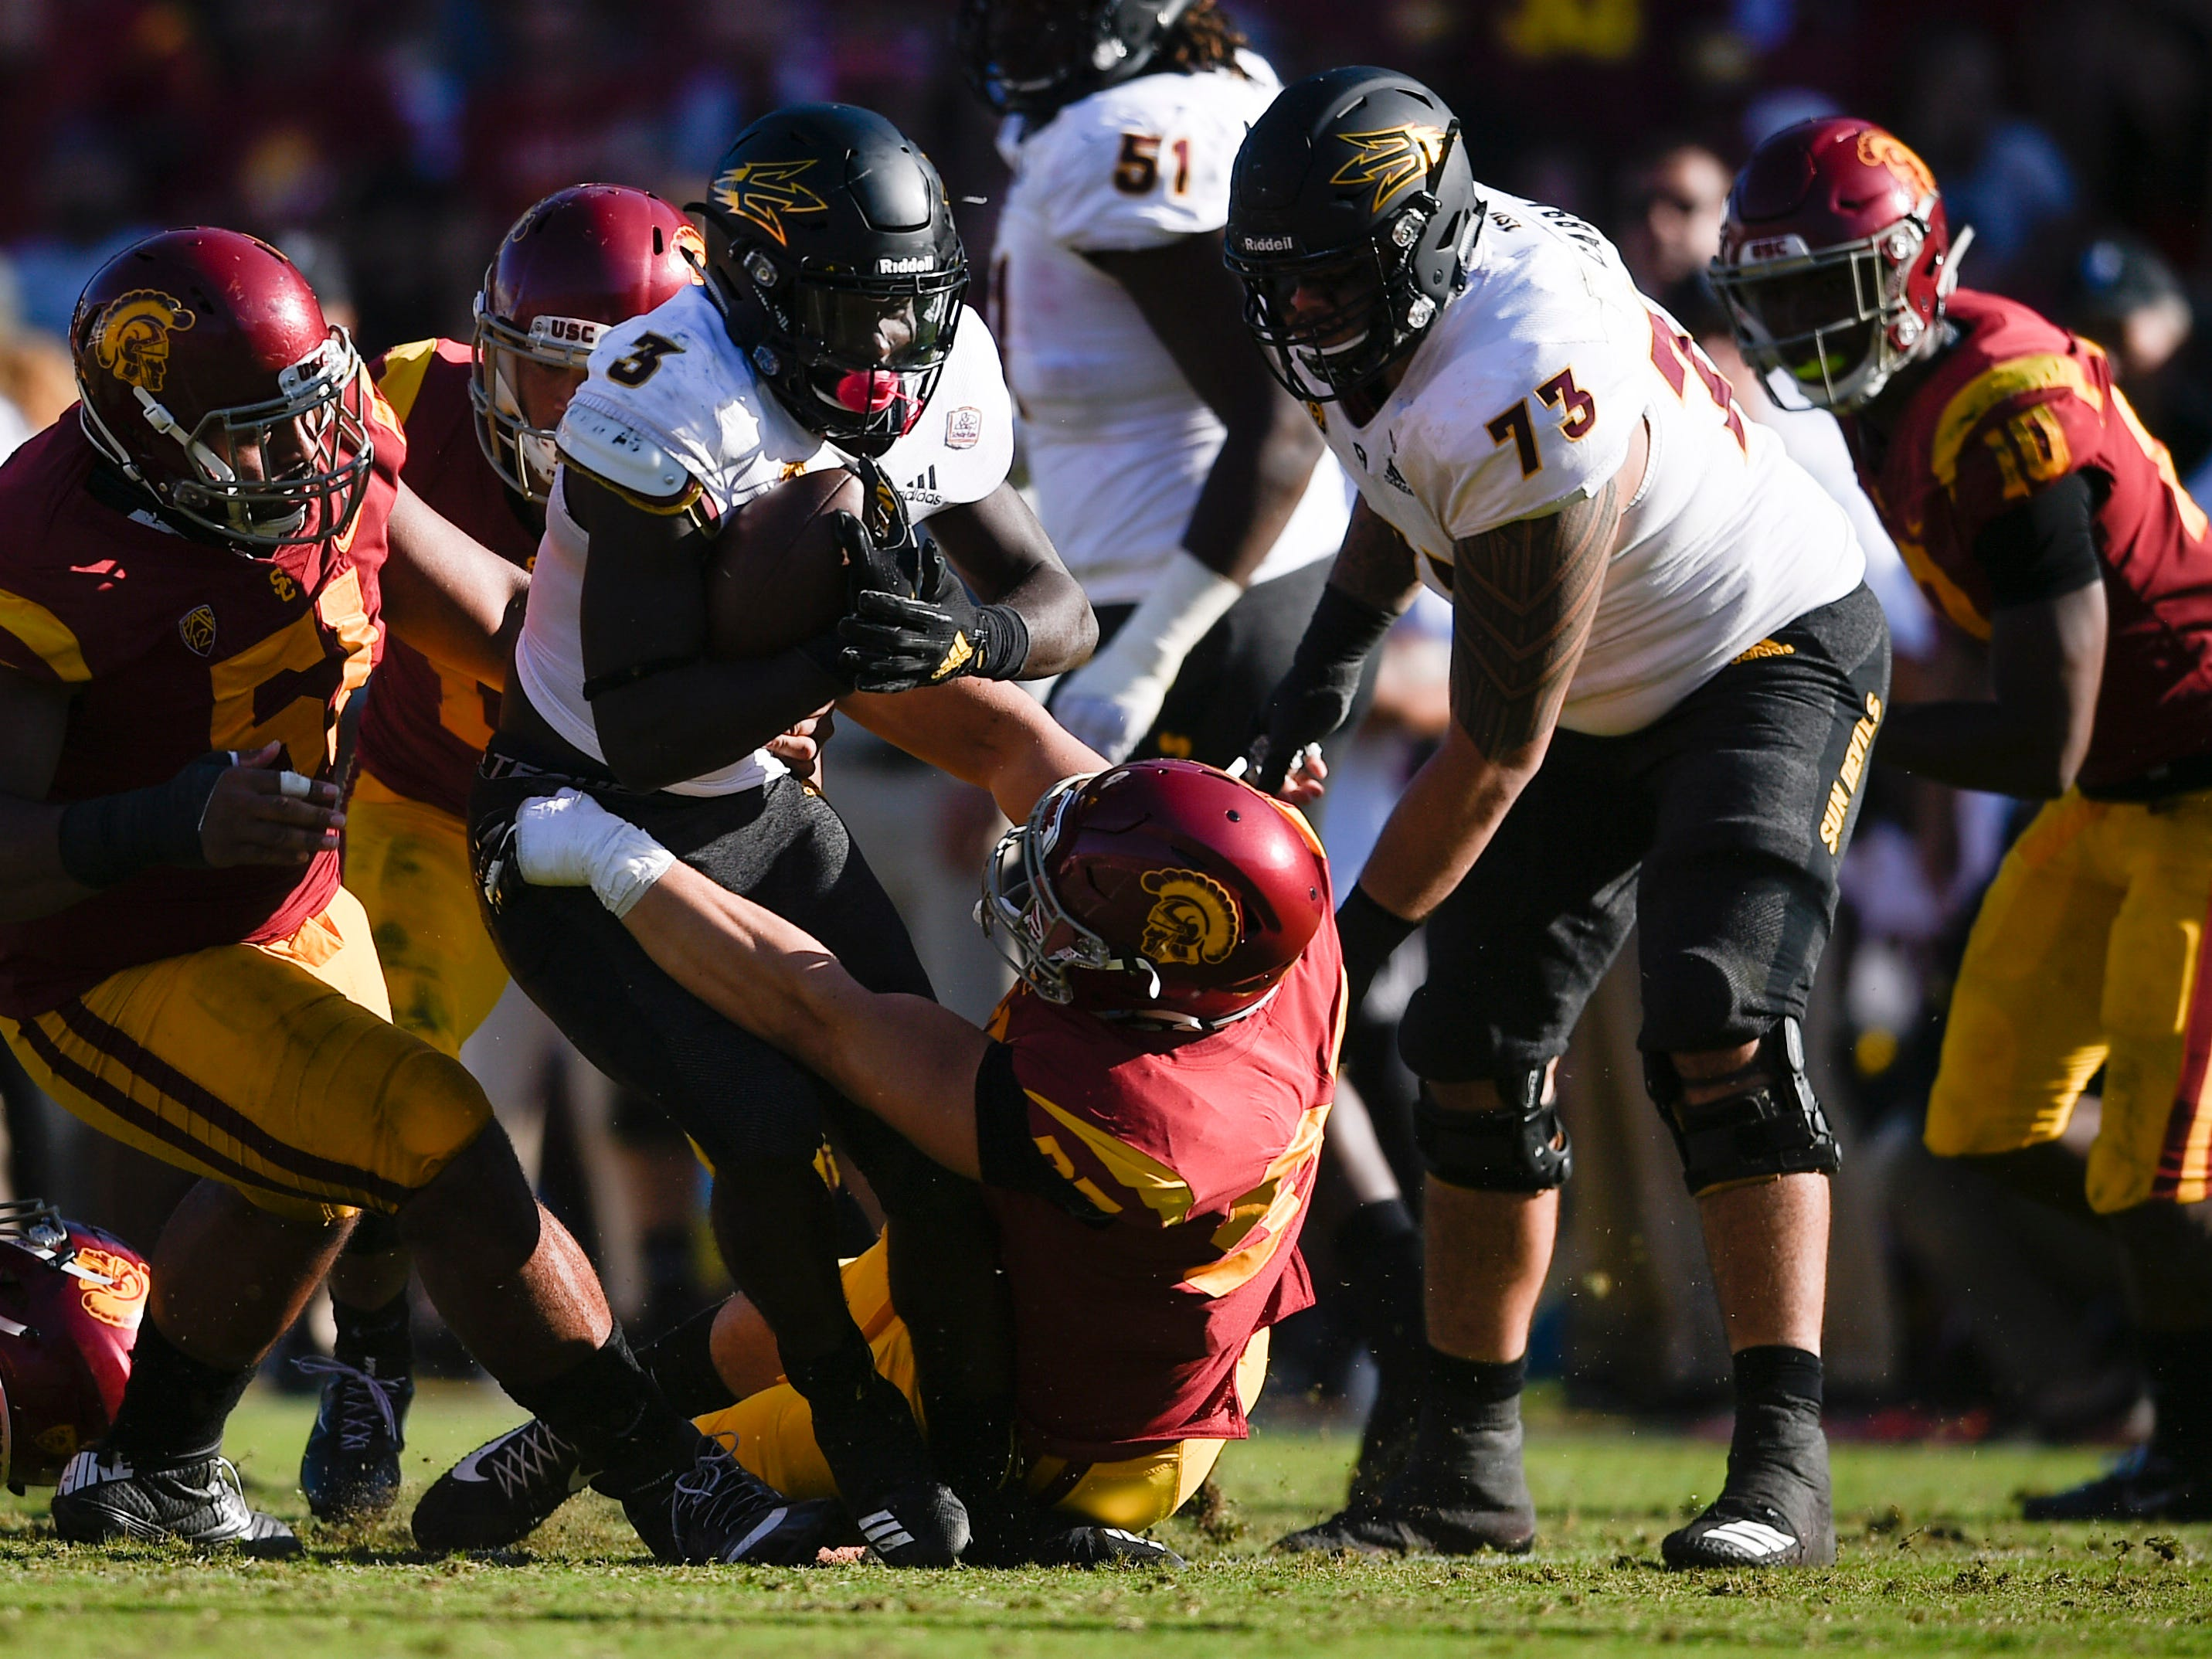 Oct 27, 2018; Los Angeles, CA, USA; Arizona State Sun Devils running back Eno Benjamin (3) runs the ball during the second half against the Arizona State Sun Devils at Los Angeles Memorial Coliseum. Mandatory Credit: Kelvin Kuo-USA TODAY Sports